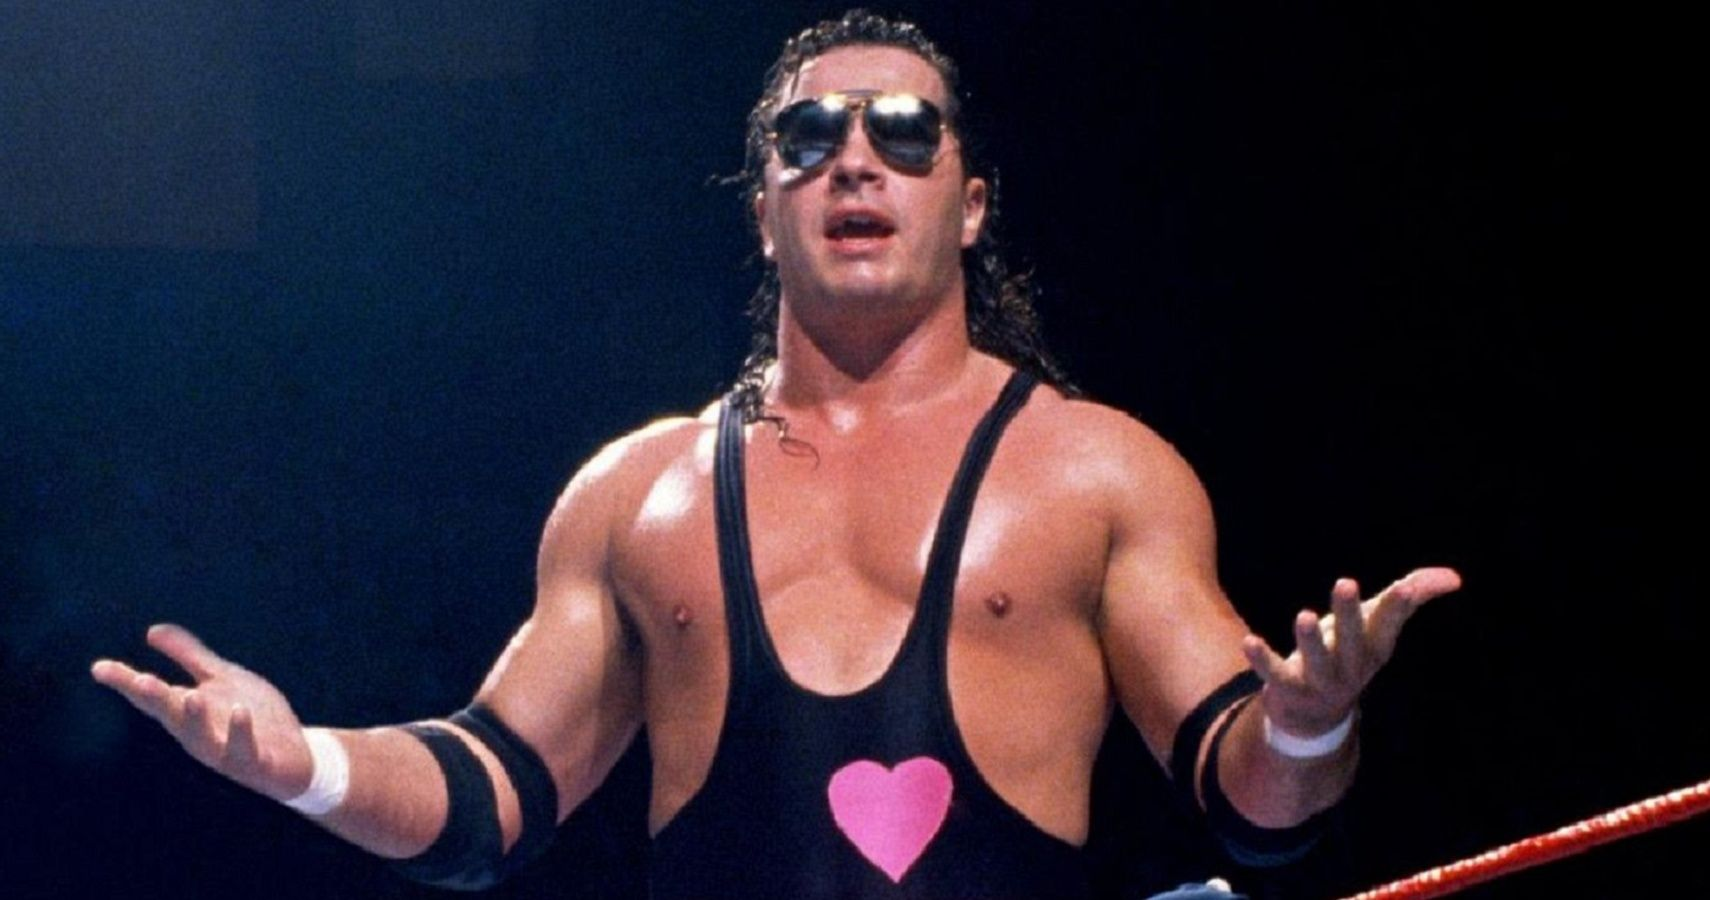 John Cena The Usos Bret Hart And More React To Roman Reigns